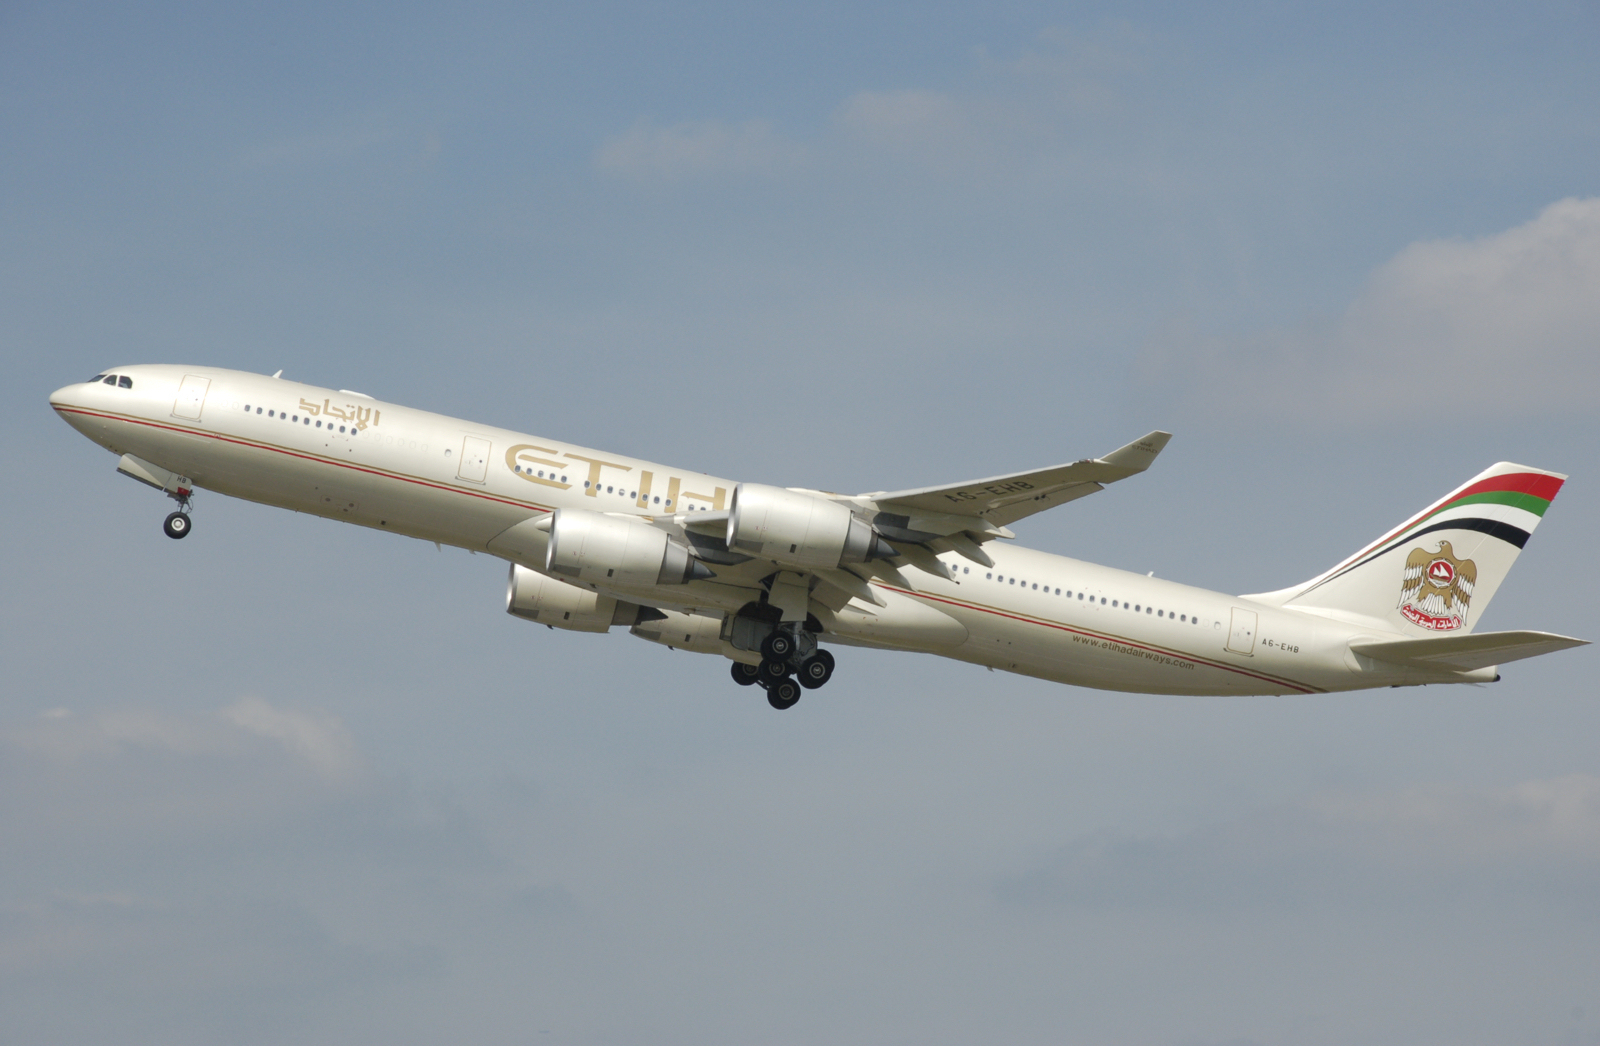 Airbus A340-500/600 #1